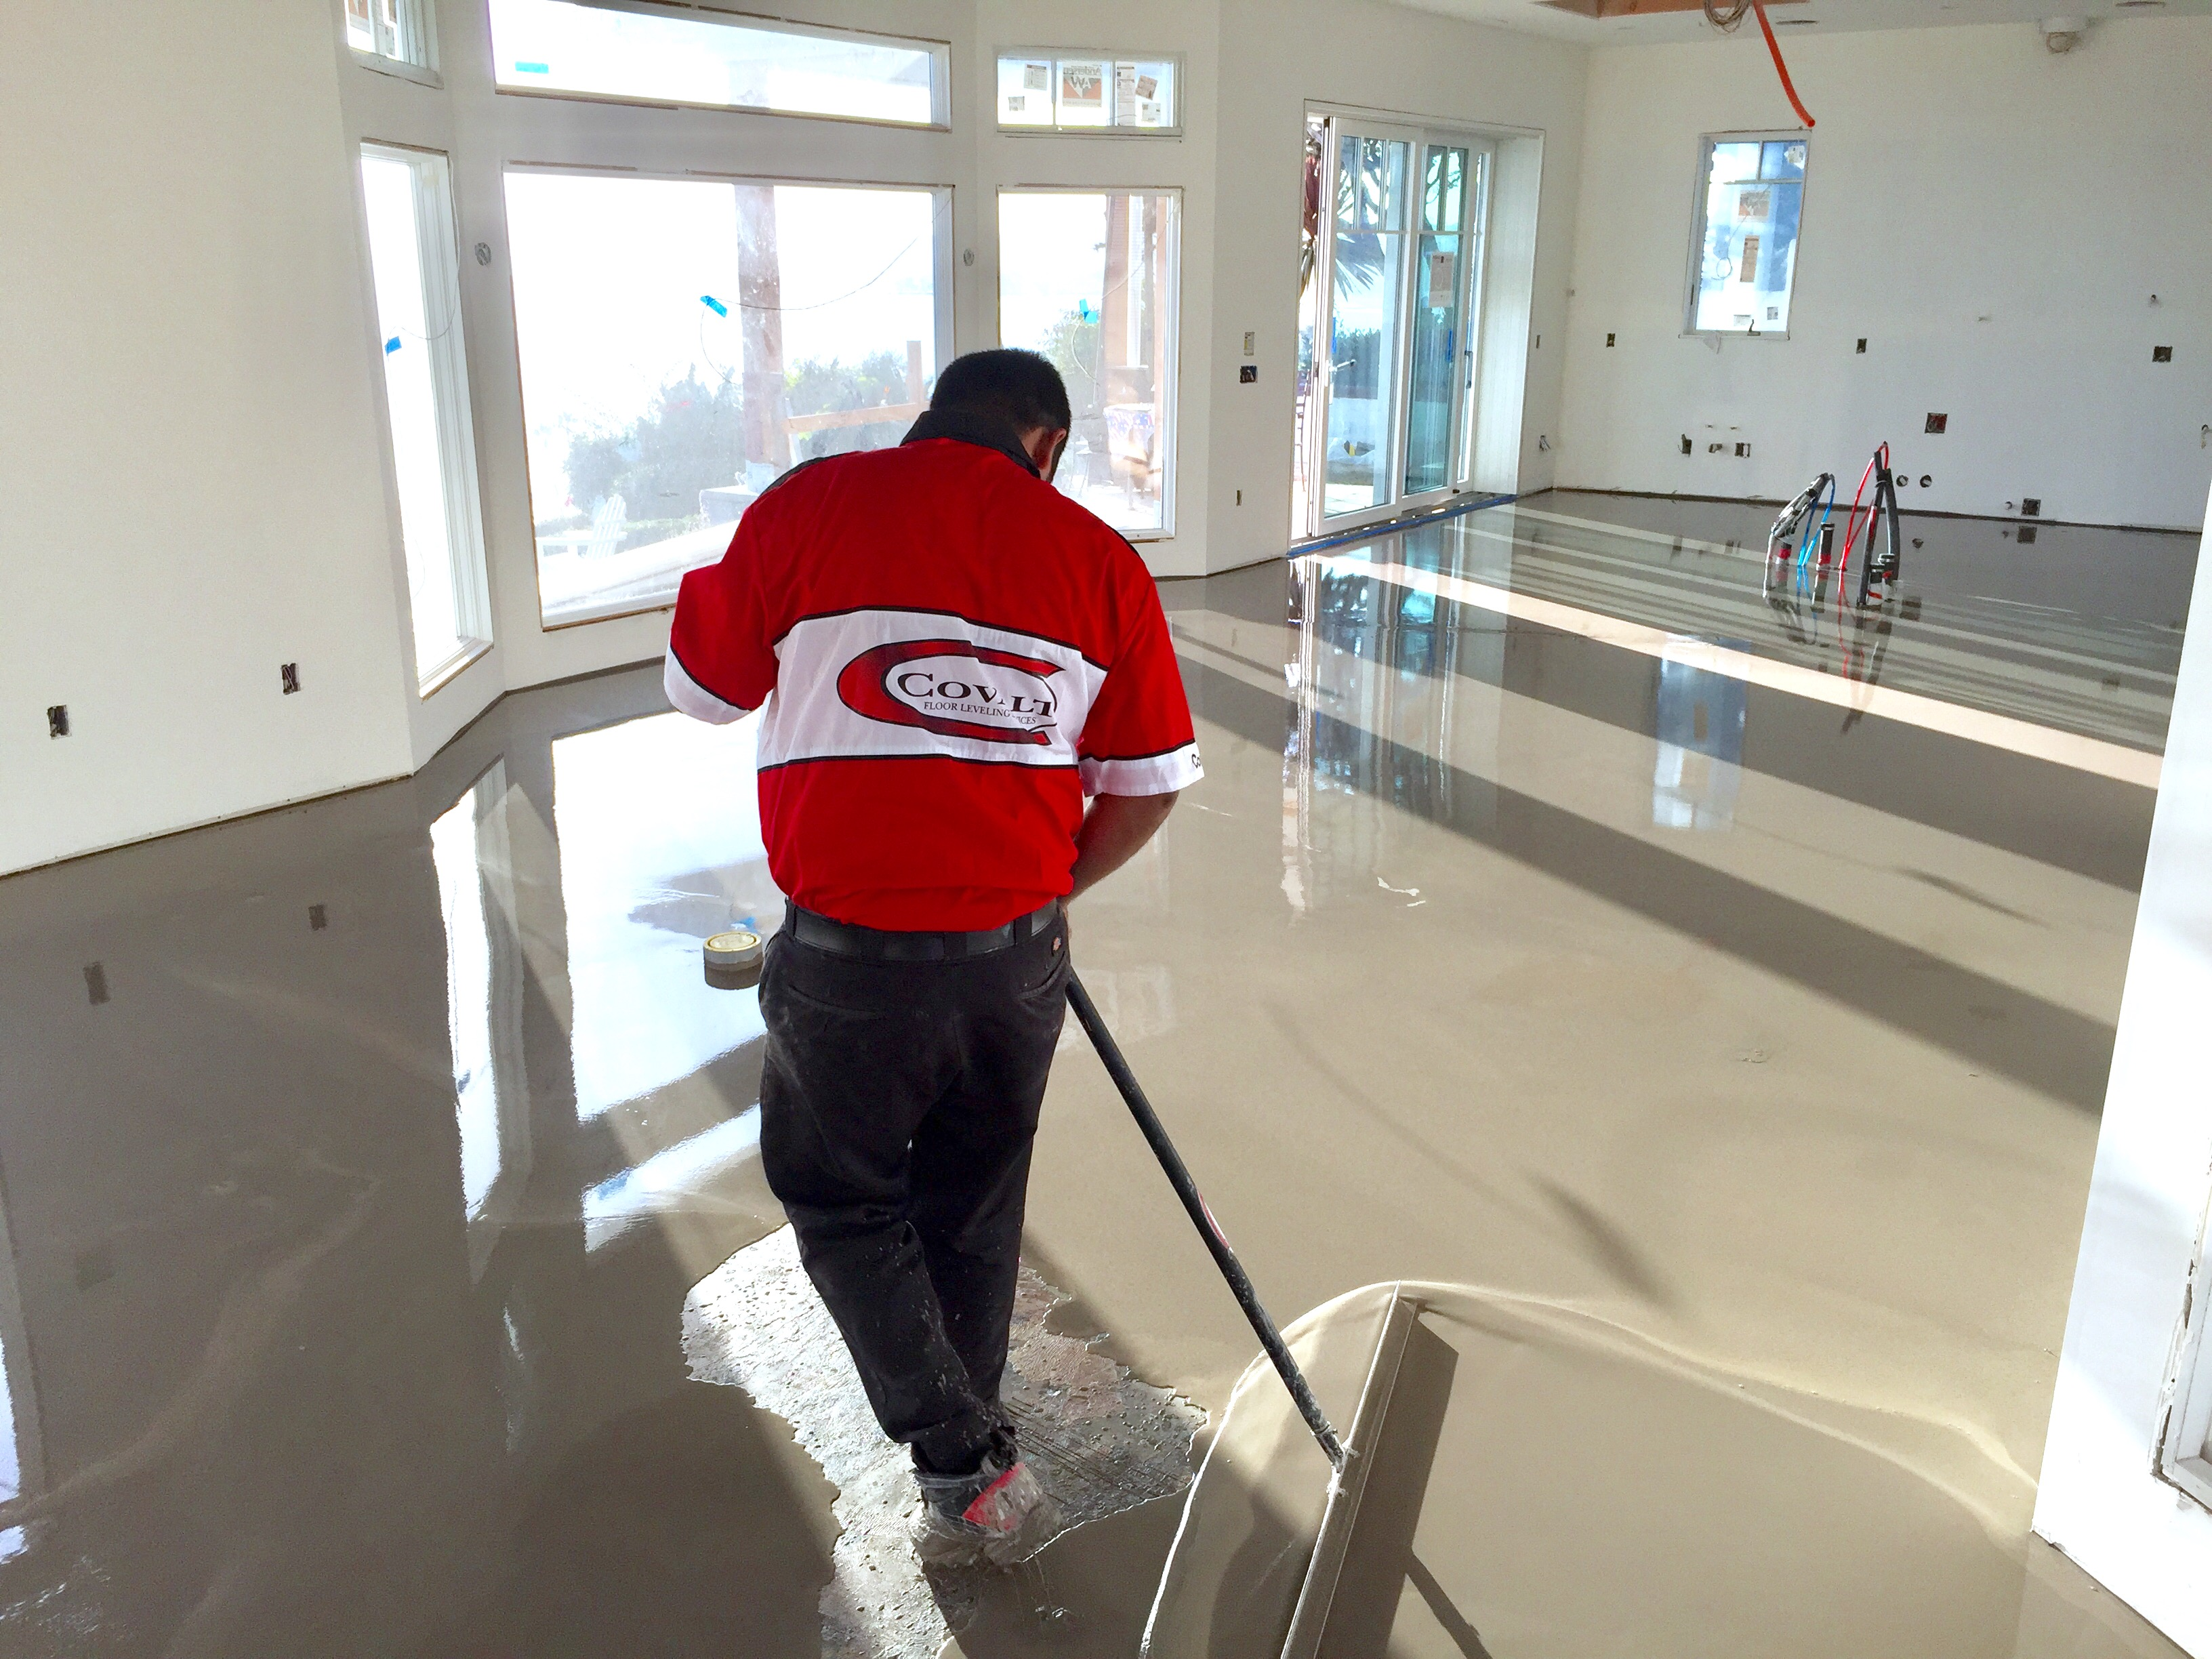 Covalt Floor Repair Concrete Floor Repair Concrete Floor Leveling - Subfloor leveling techniques